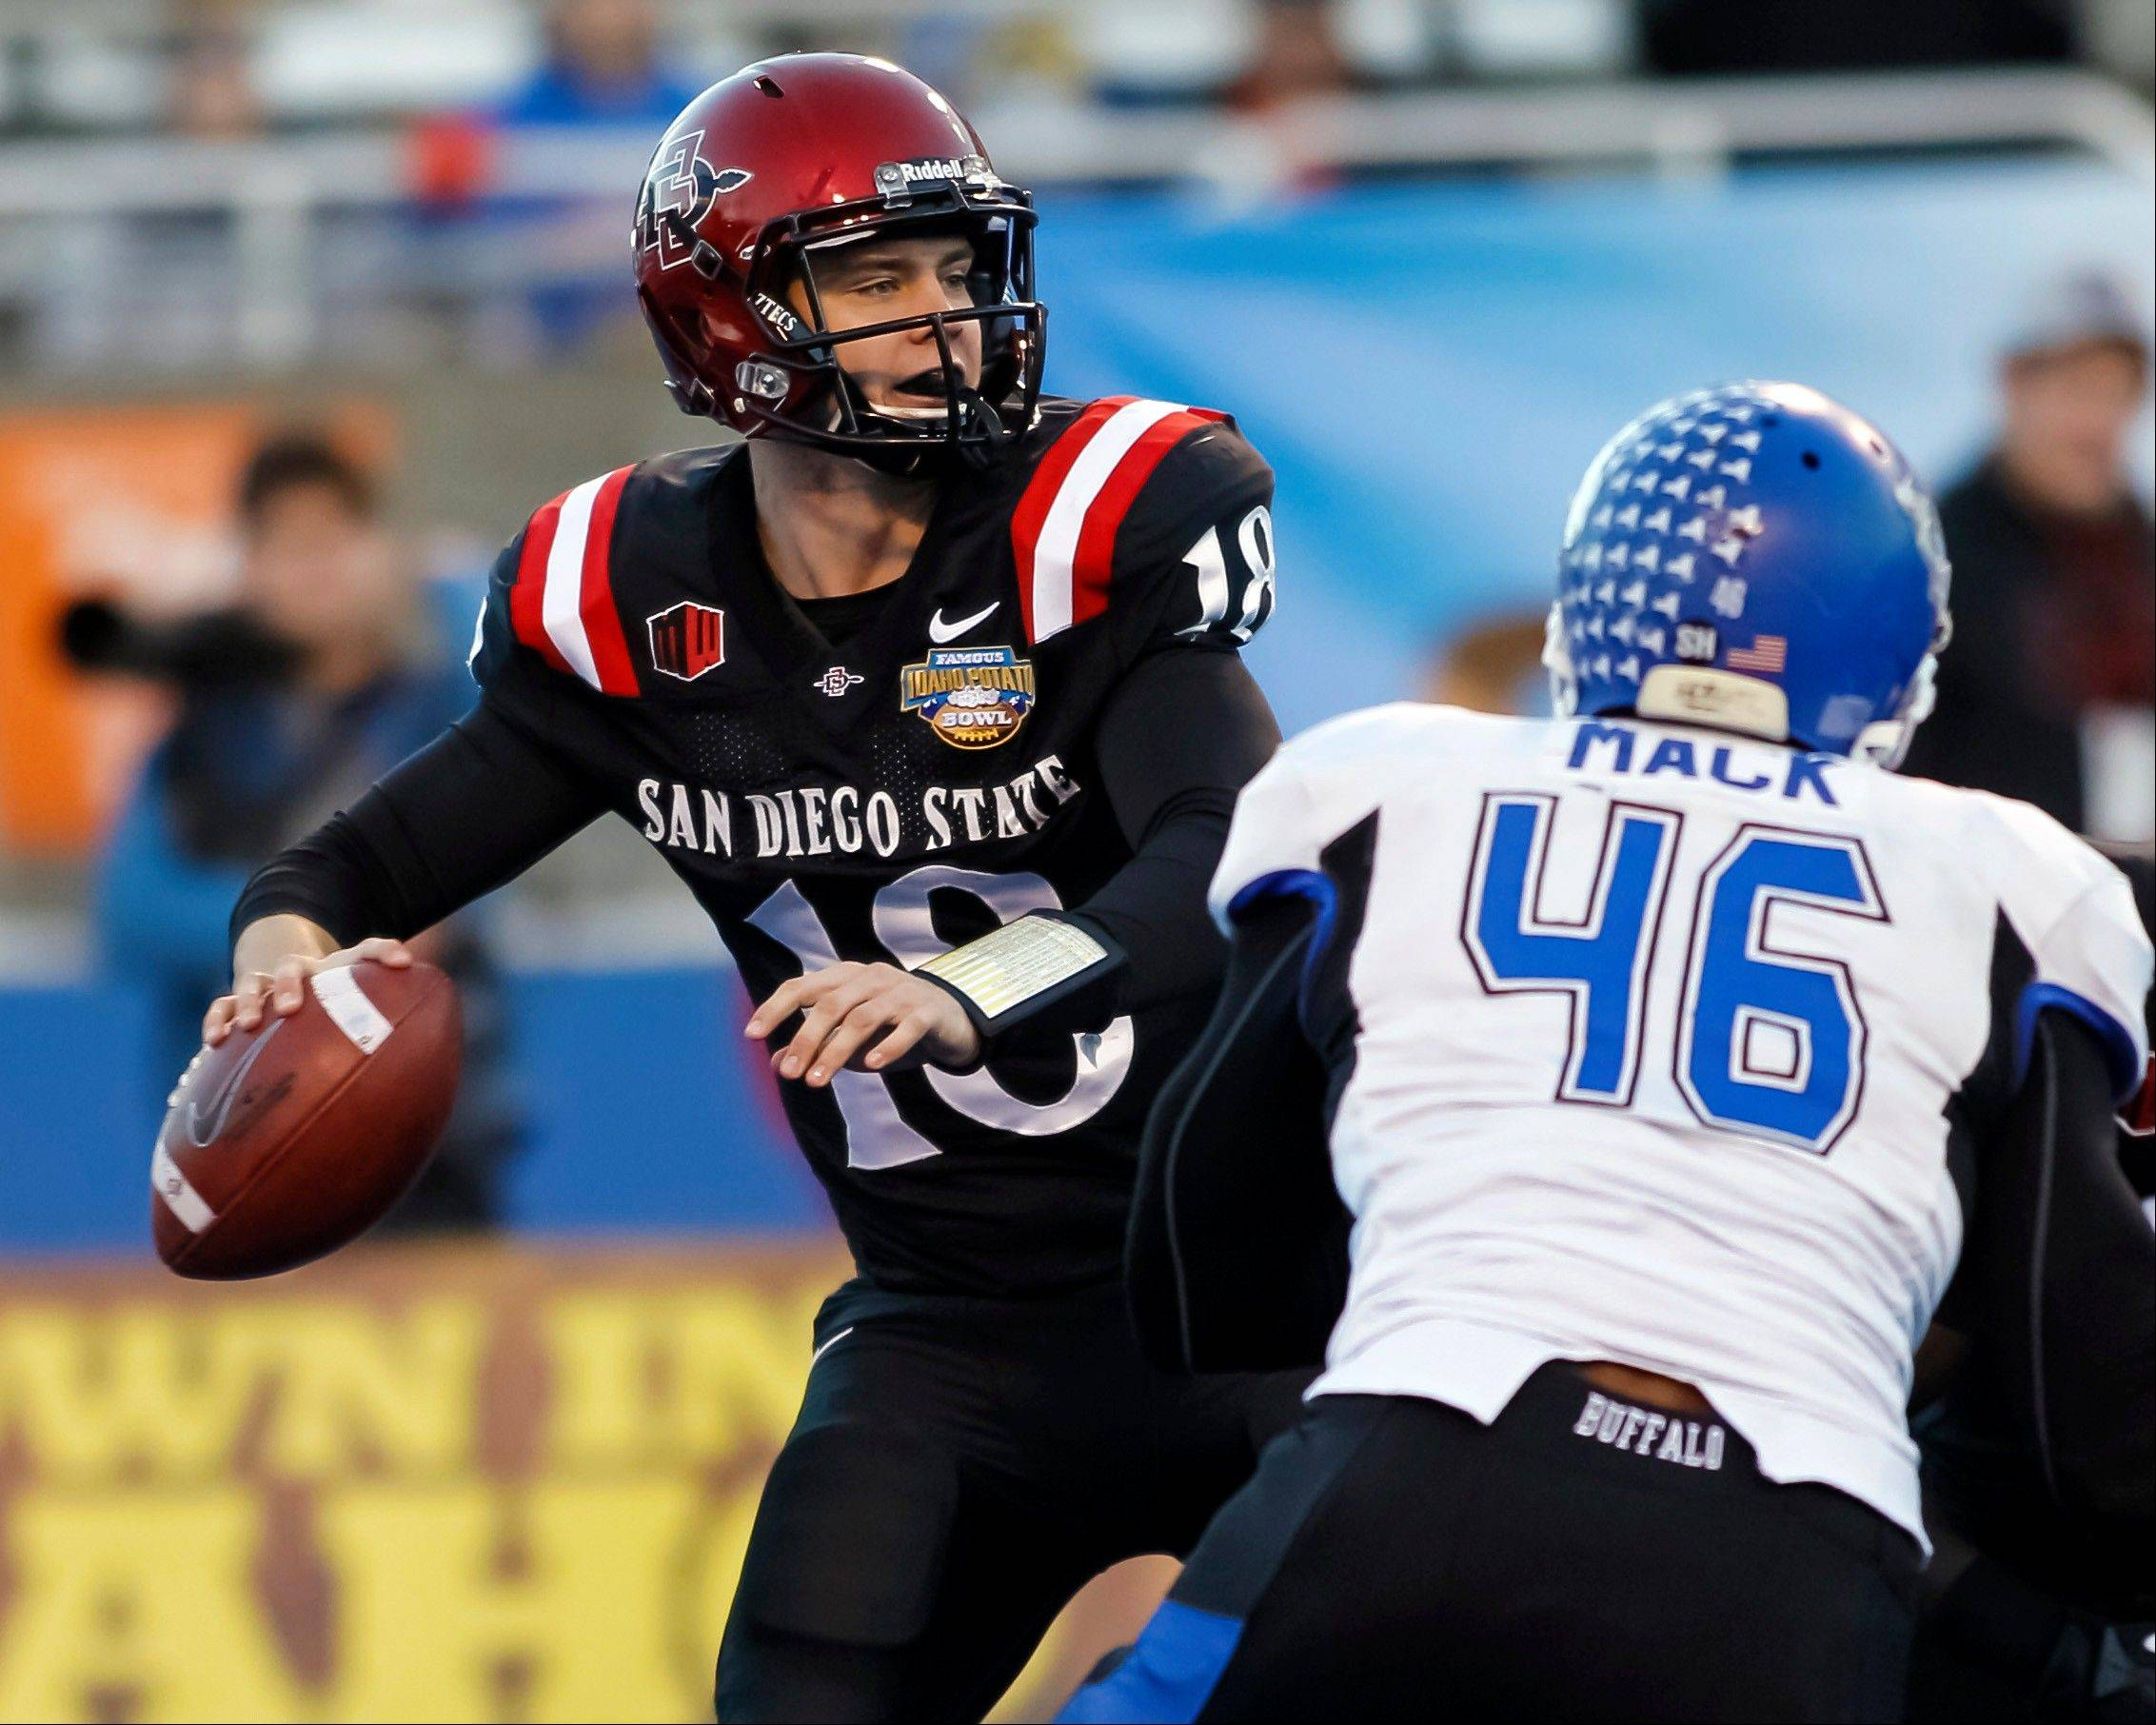 San Diego St. mashes Buffalo in Potato Bowl